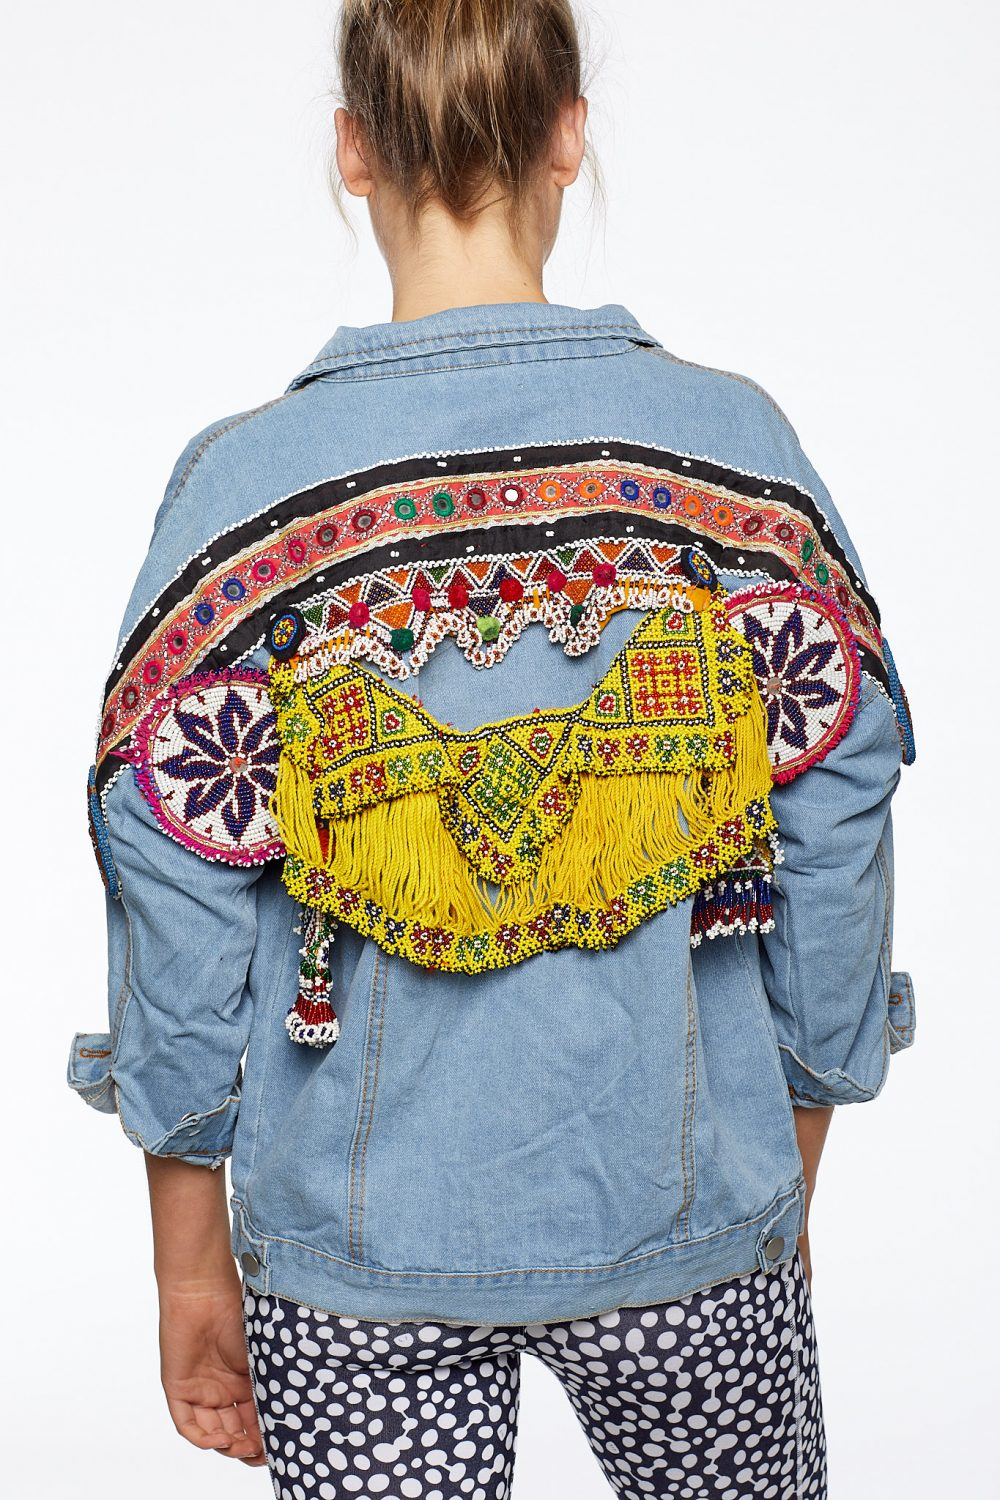 The Happy People Co Embellished Denim Jacket